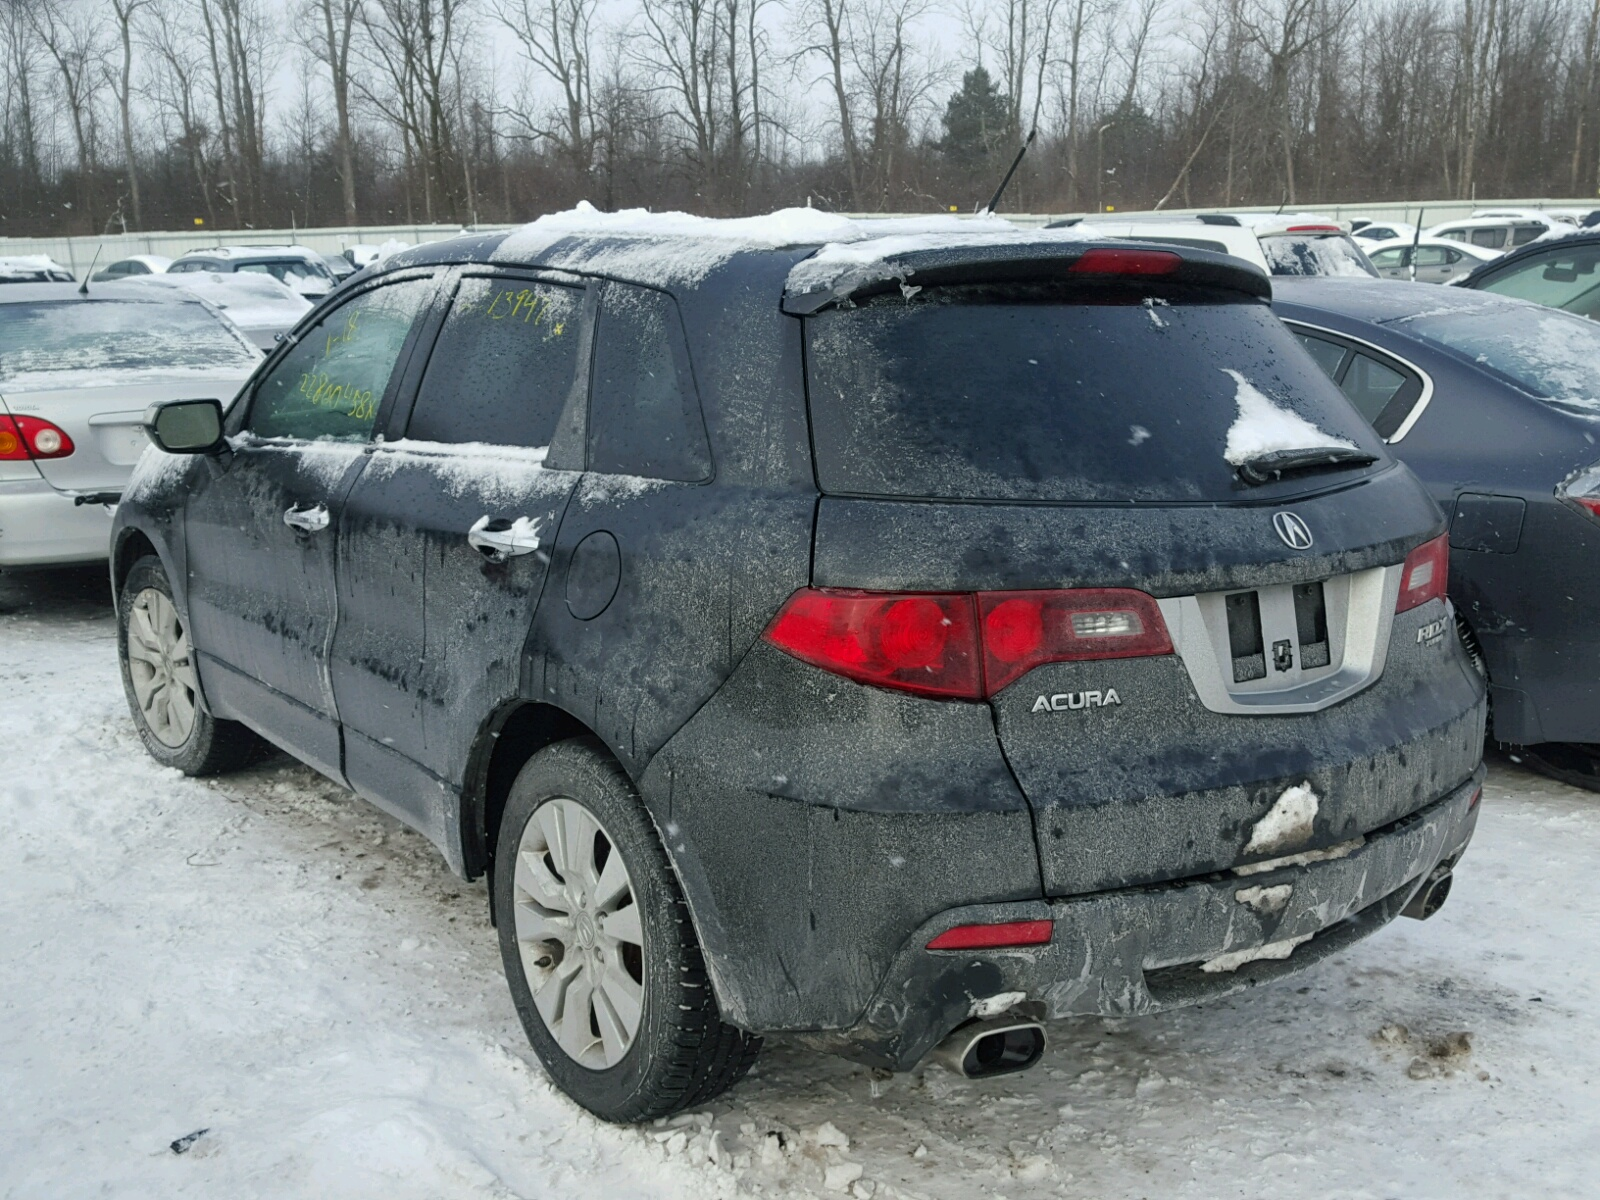 ny copart at leroy rdx acura lot for sale cars